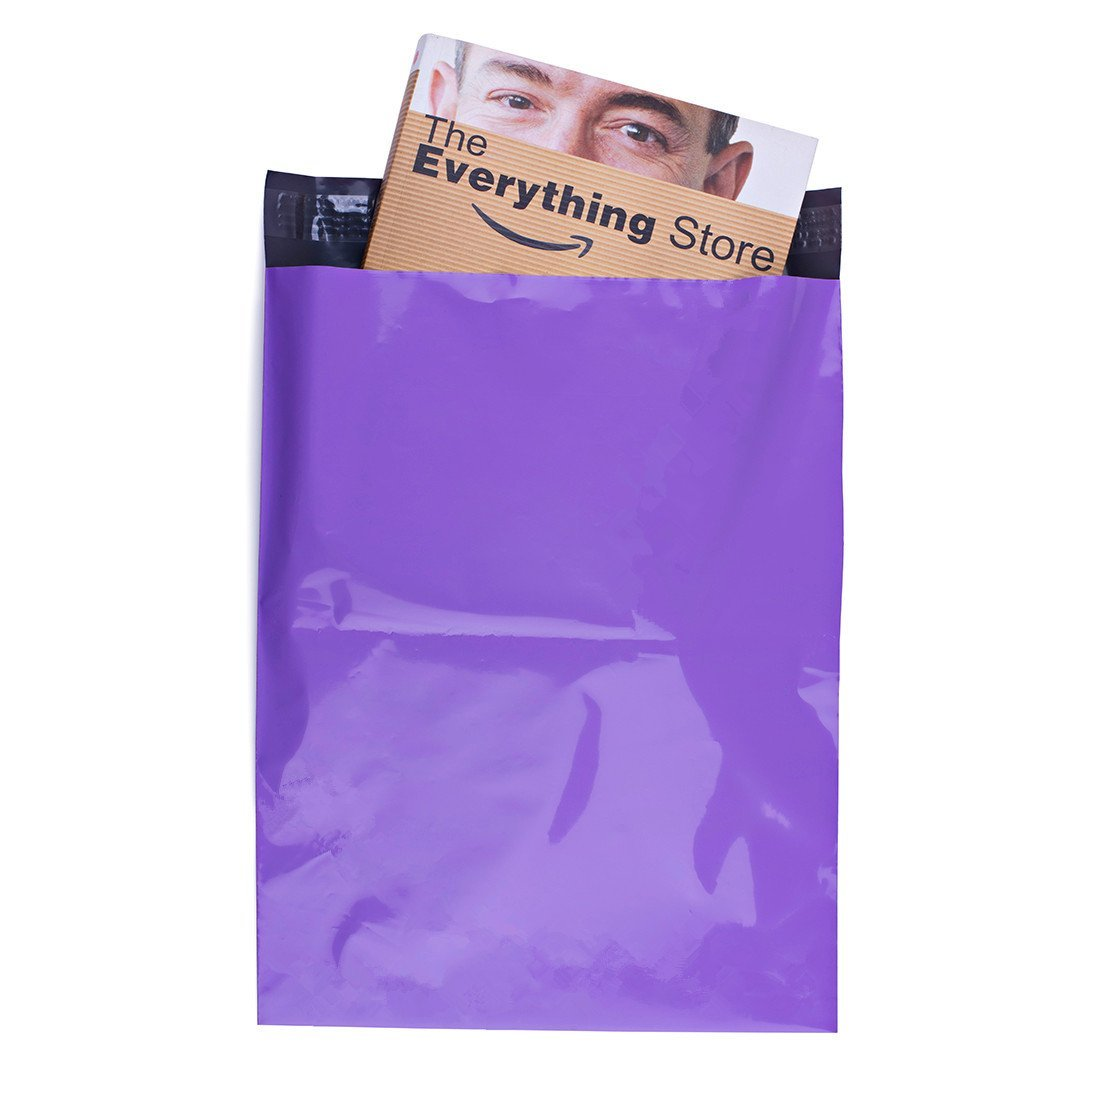 cheap 6x9 mail bags find 6x9 mail bags deals on line at alibaba com